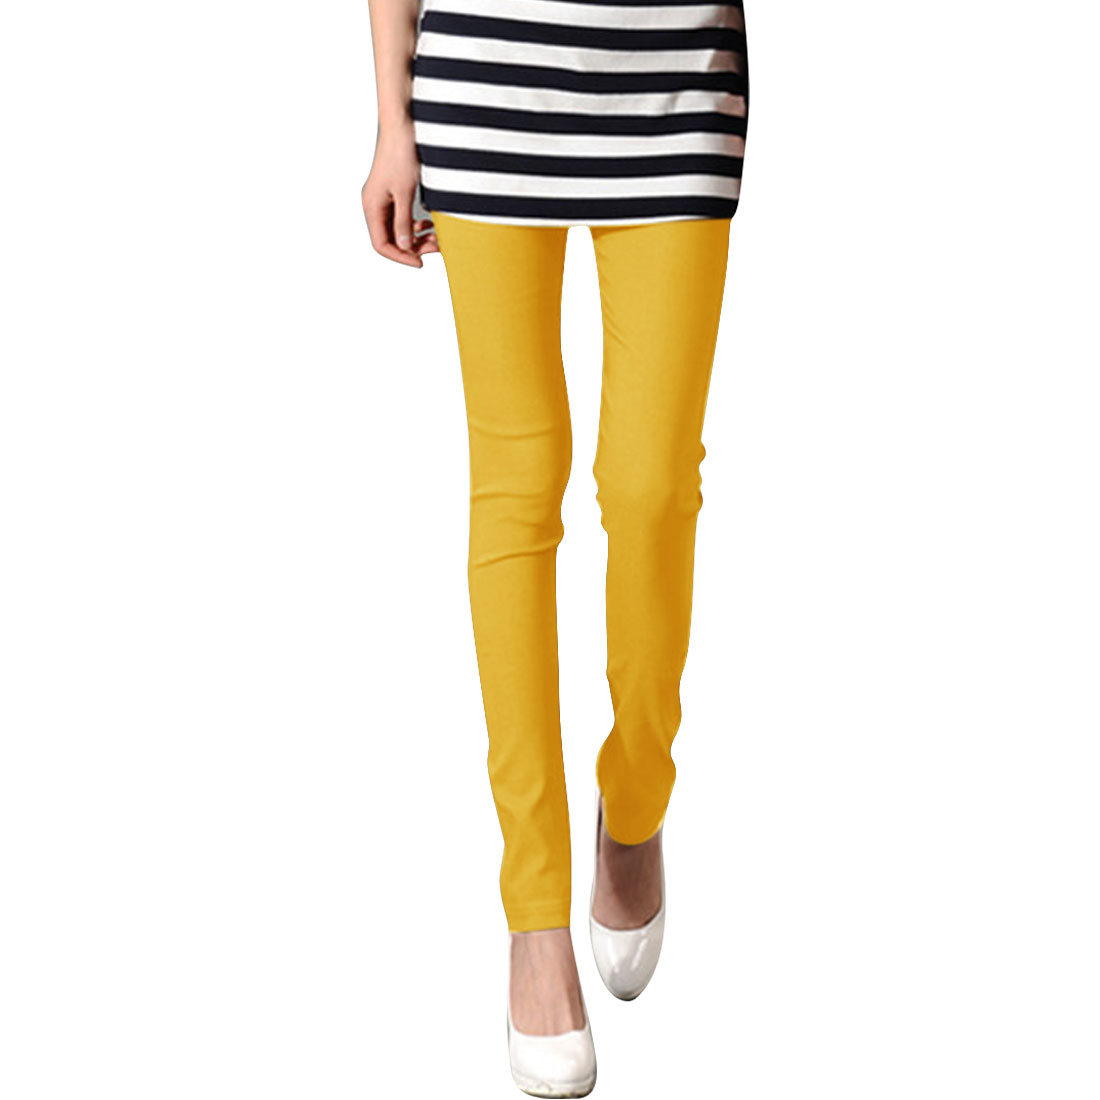 XS Yellow Slim Fit Design Solid Color Form-fitting Hip Tight Women Legging